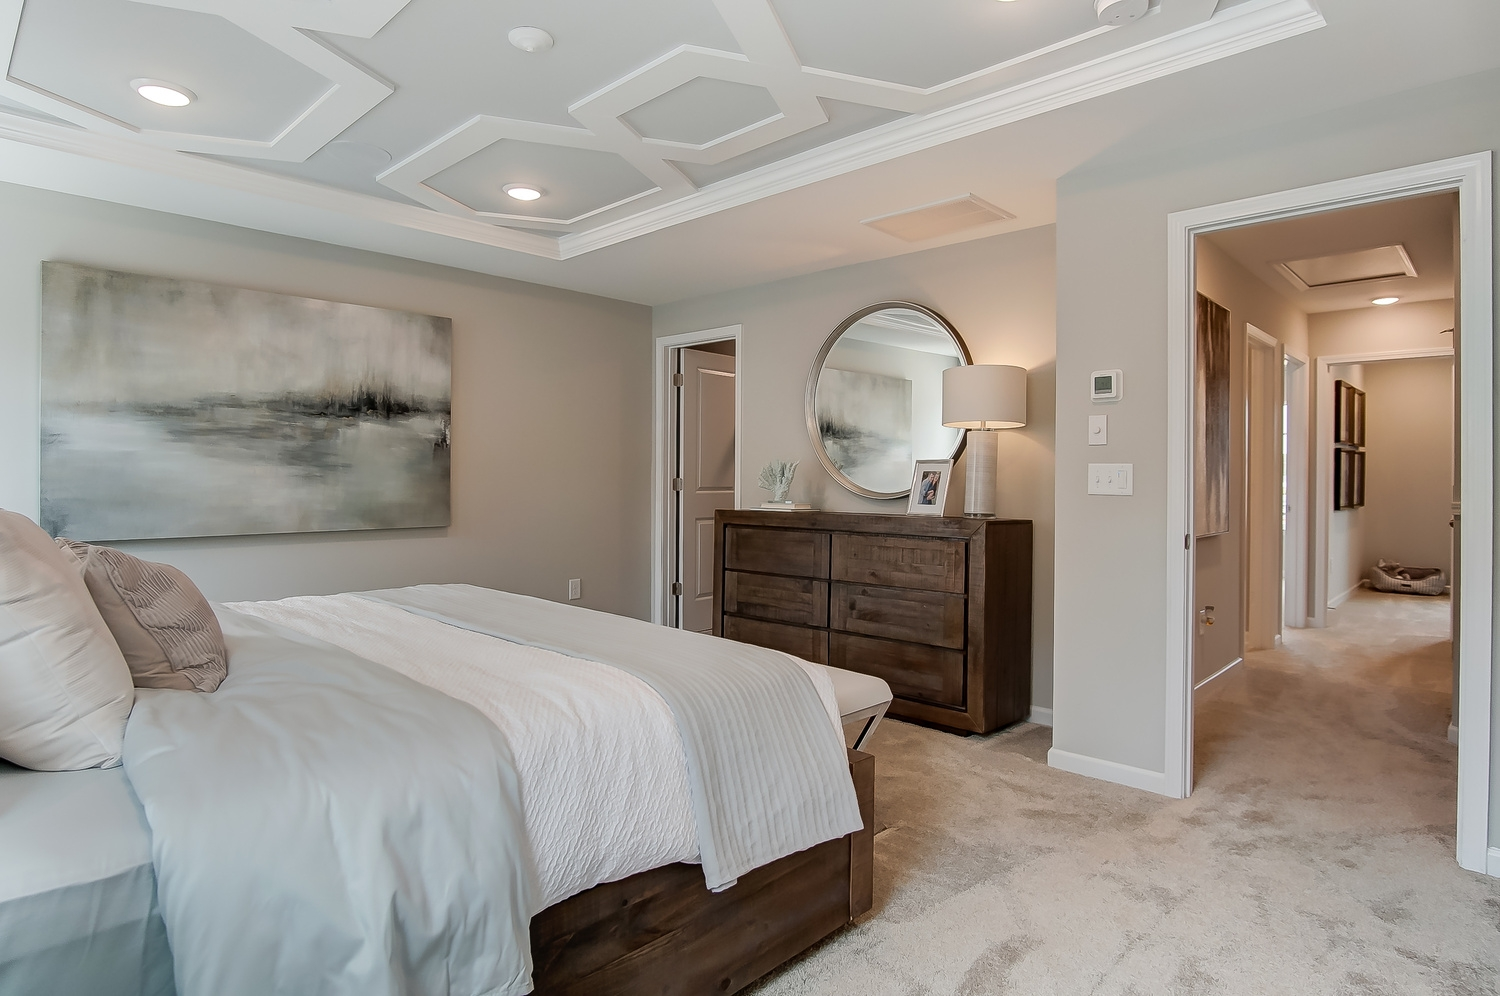 Kensington Townhome Owner's Bedroom